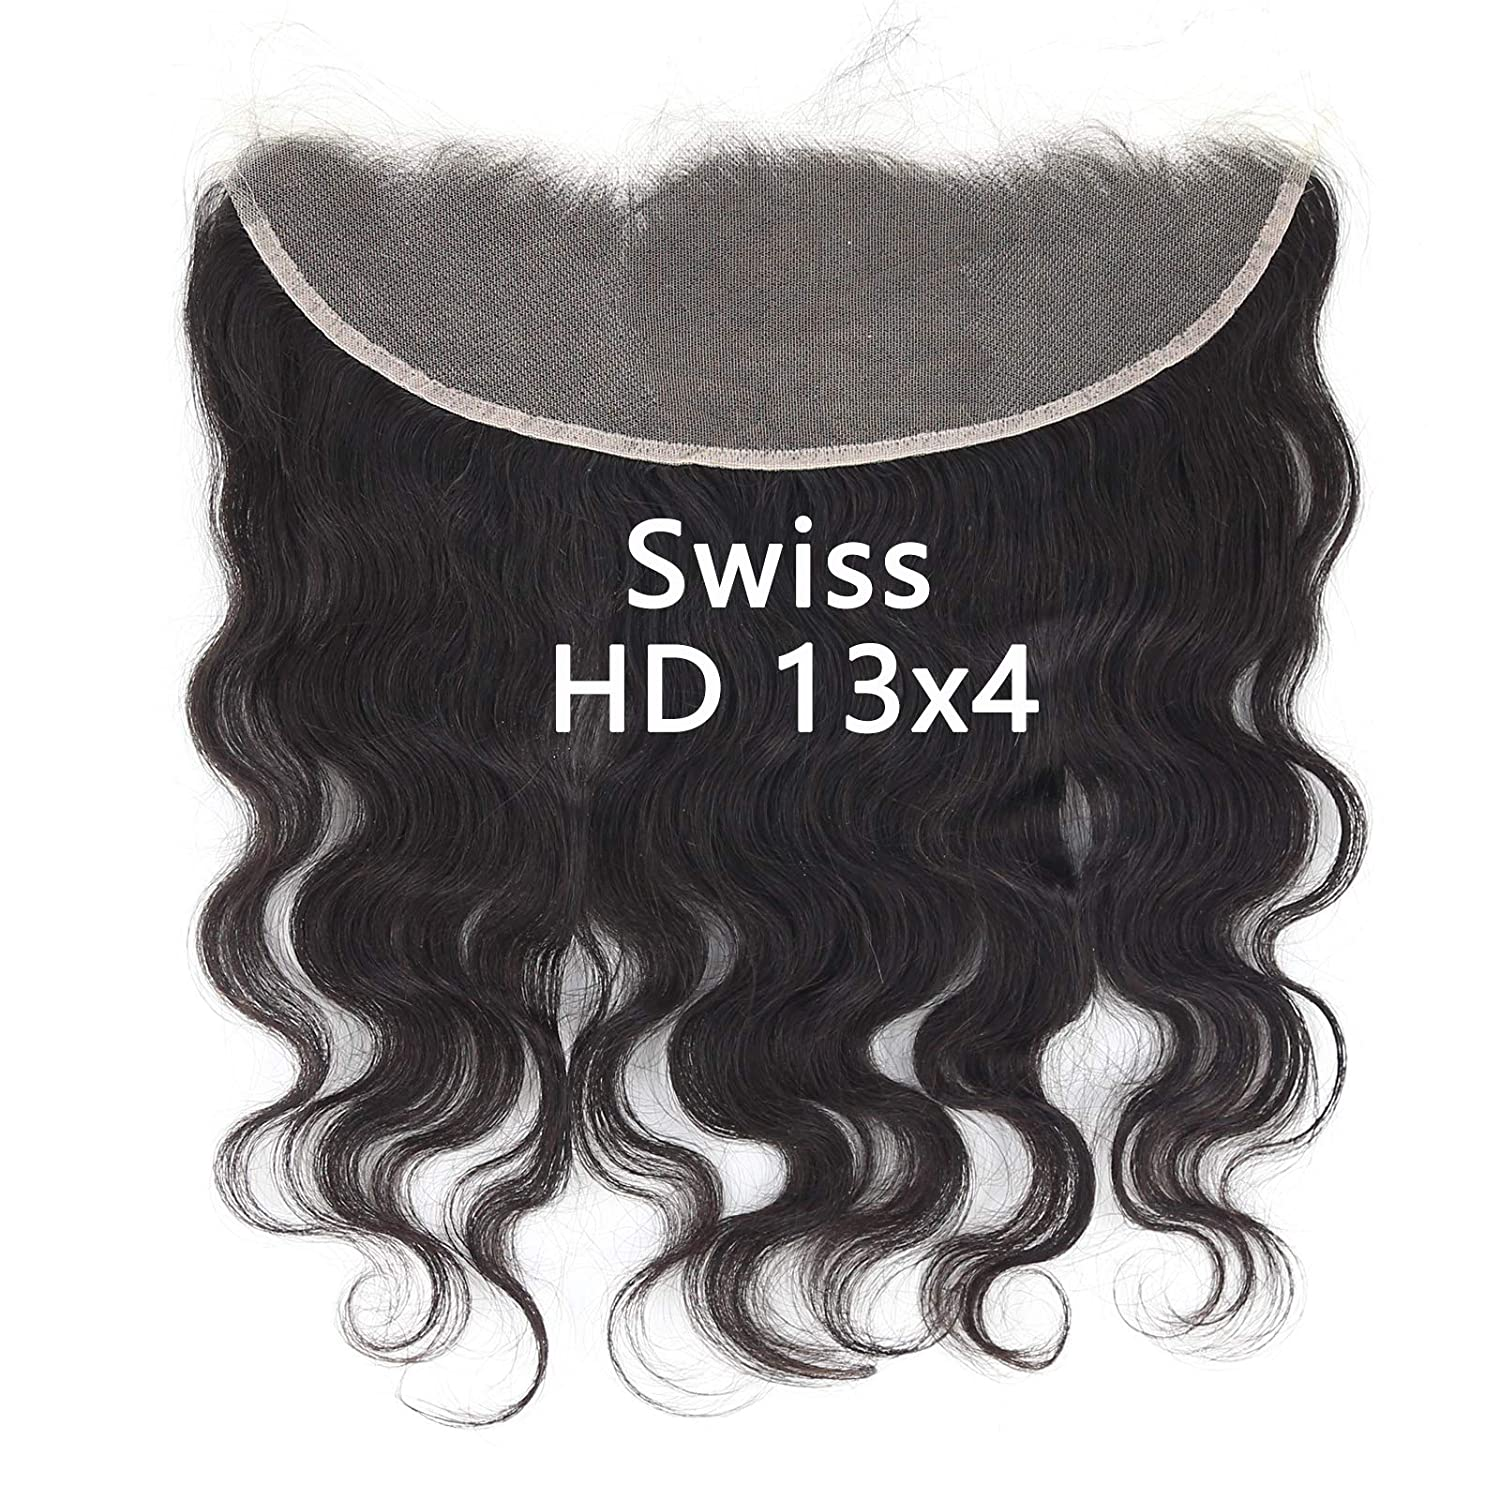 BTWTRY Pre Plucked Inventory cleanup selling sale HD 13x4 Max 65% OFF Lace Natural Hairli Body Wave Frontal